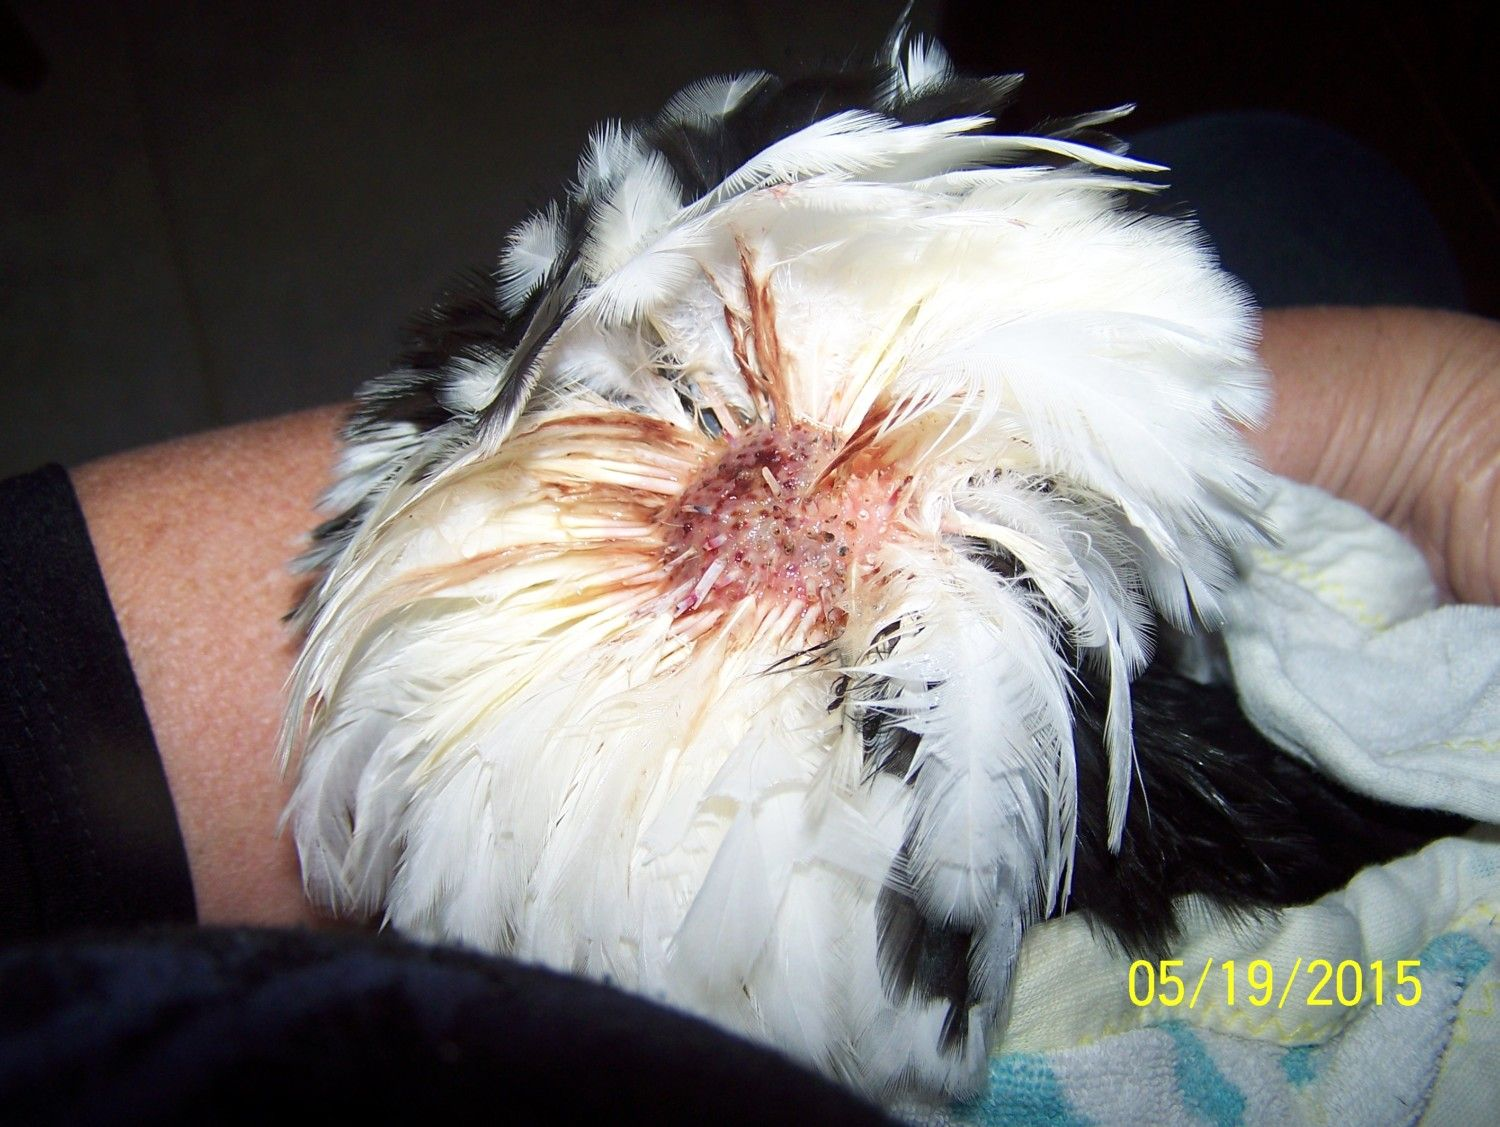 Hello Kitty getting aid for her pecked feathers...She's all healed up now. Steptic kept the others away from her this time.